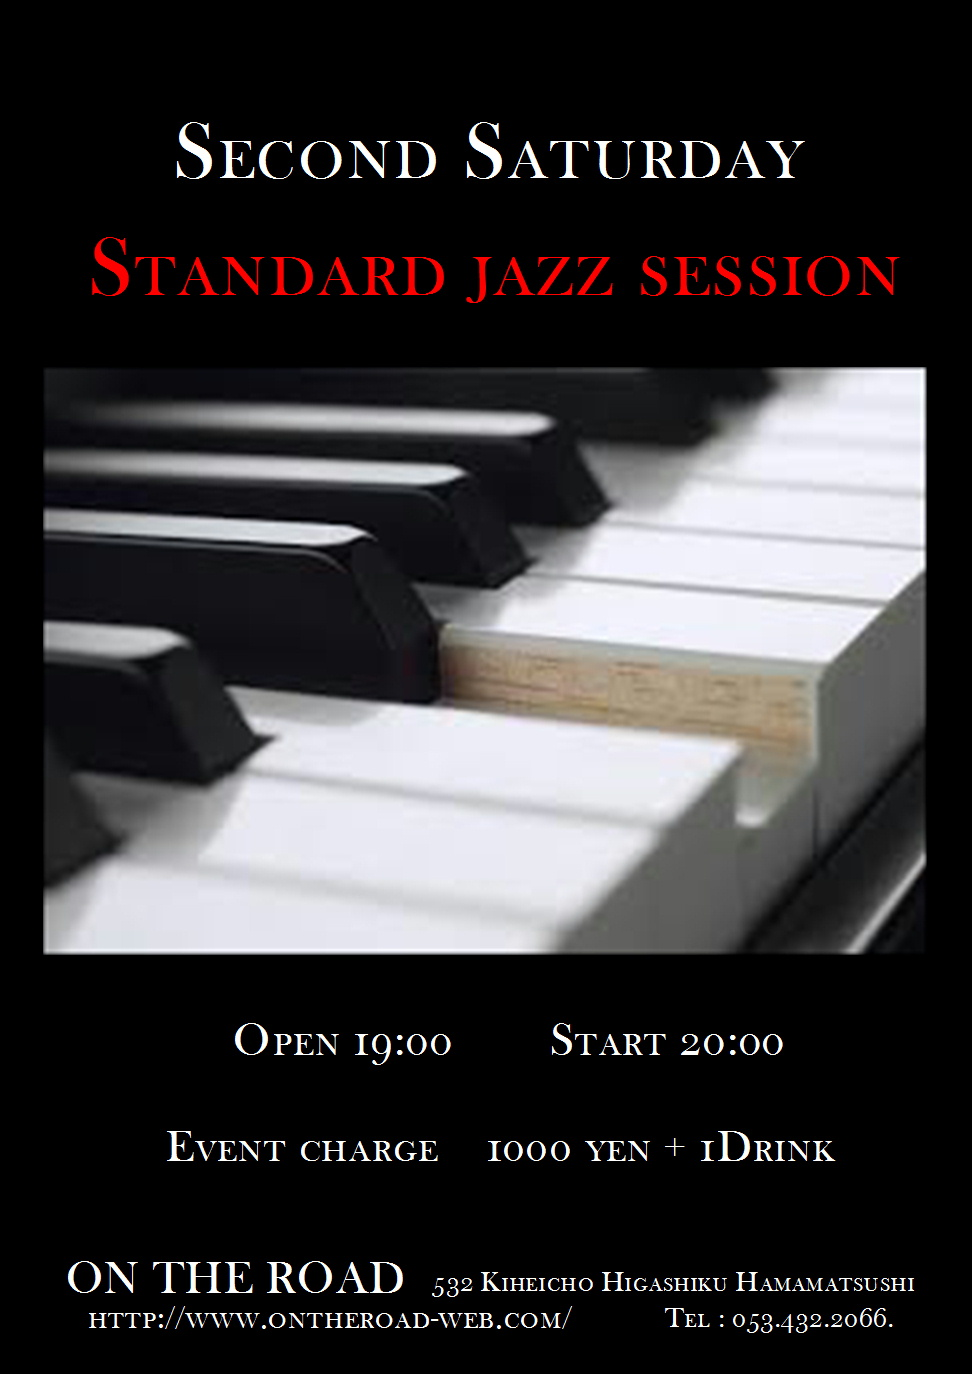 Standard Jazz Session